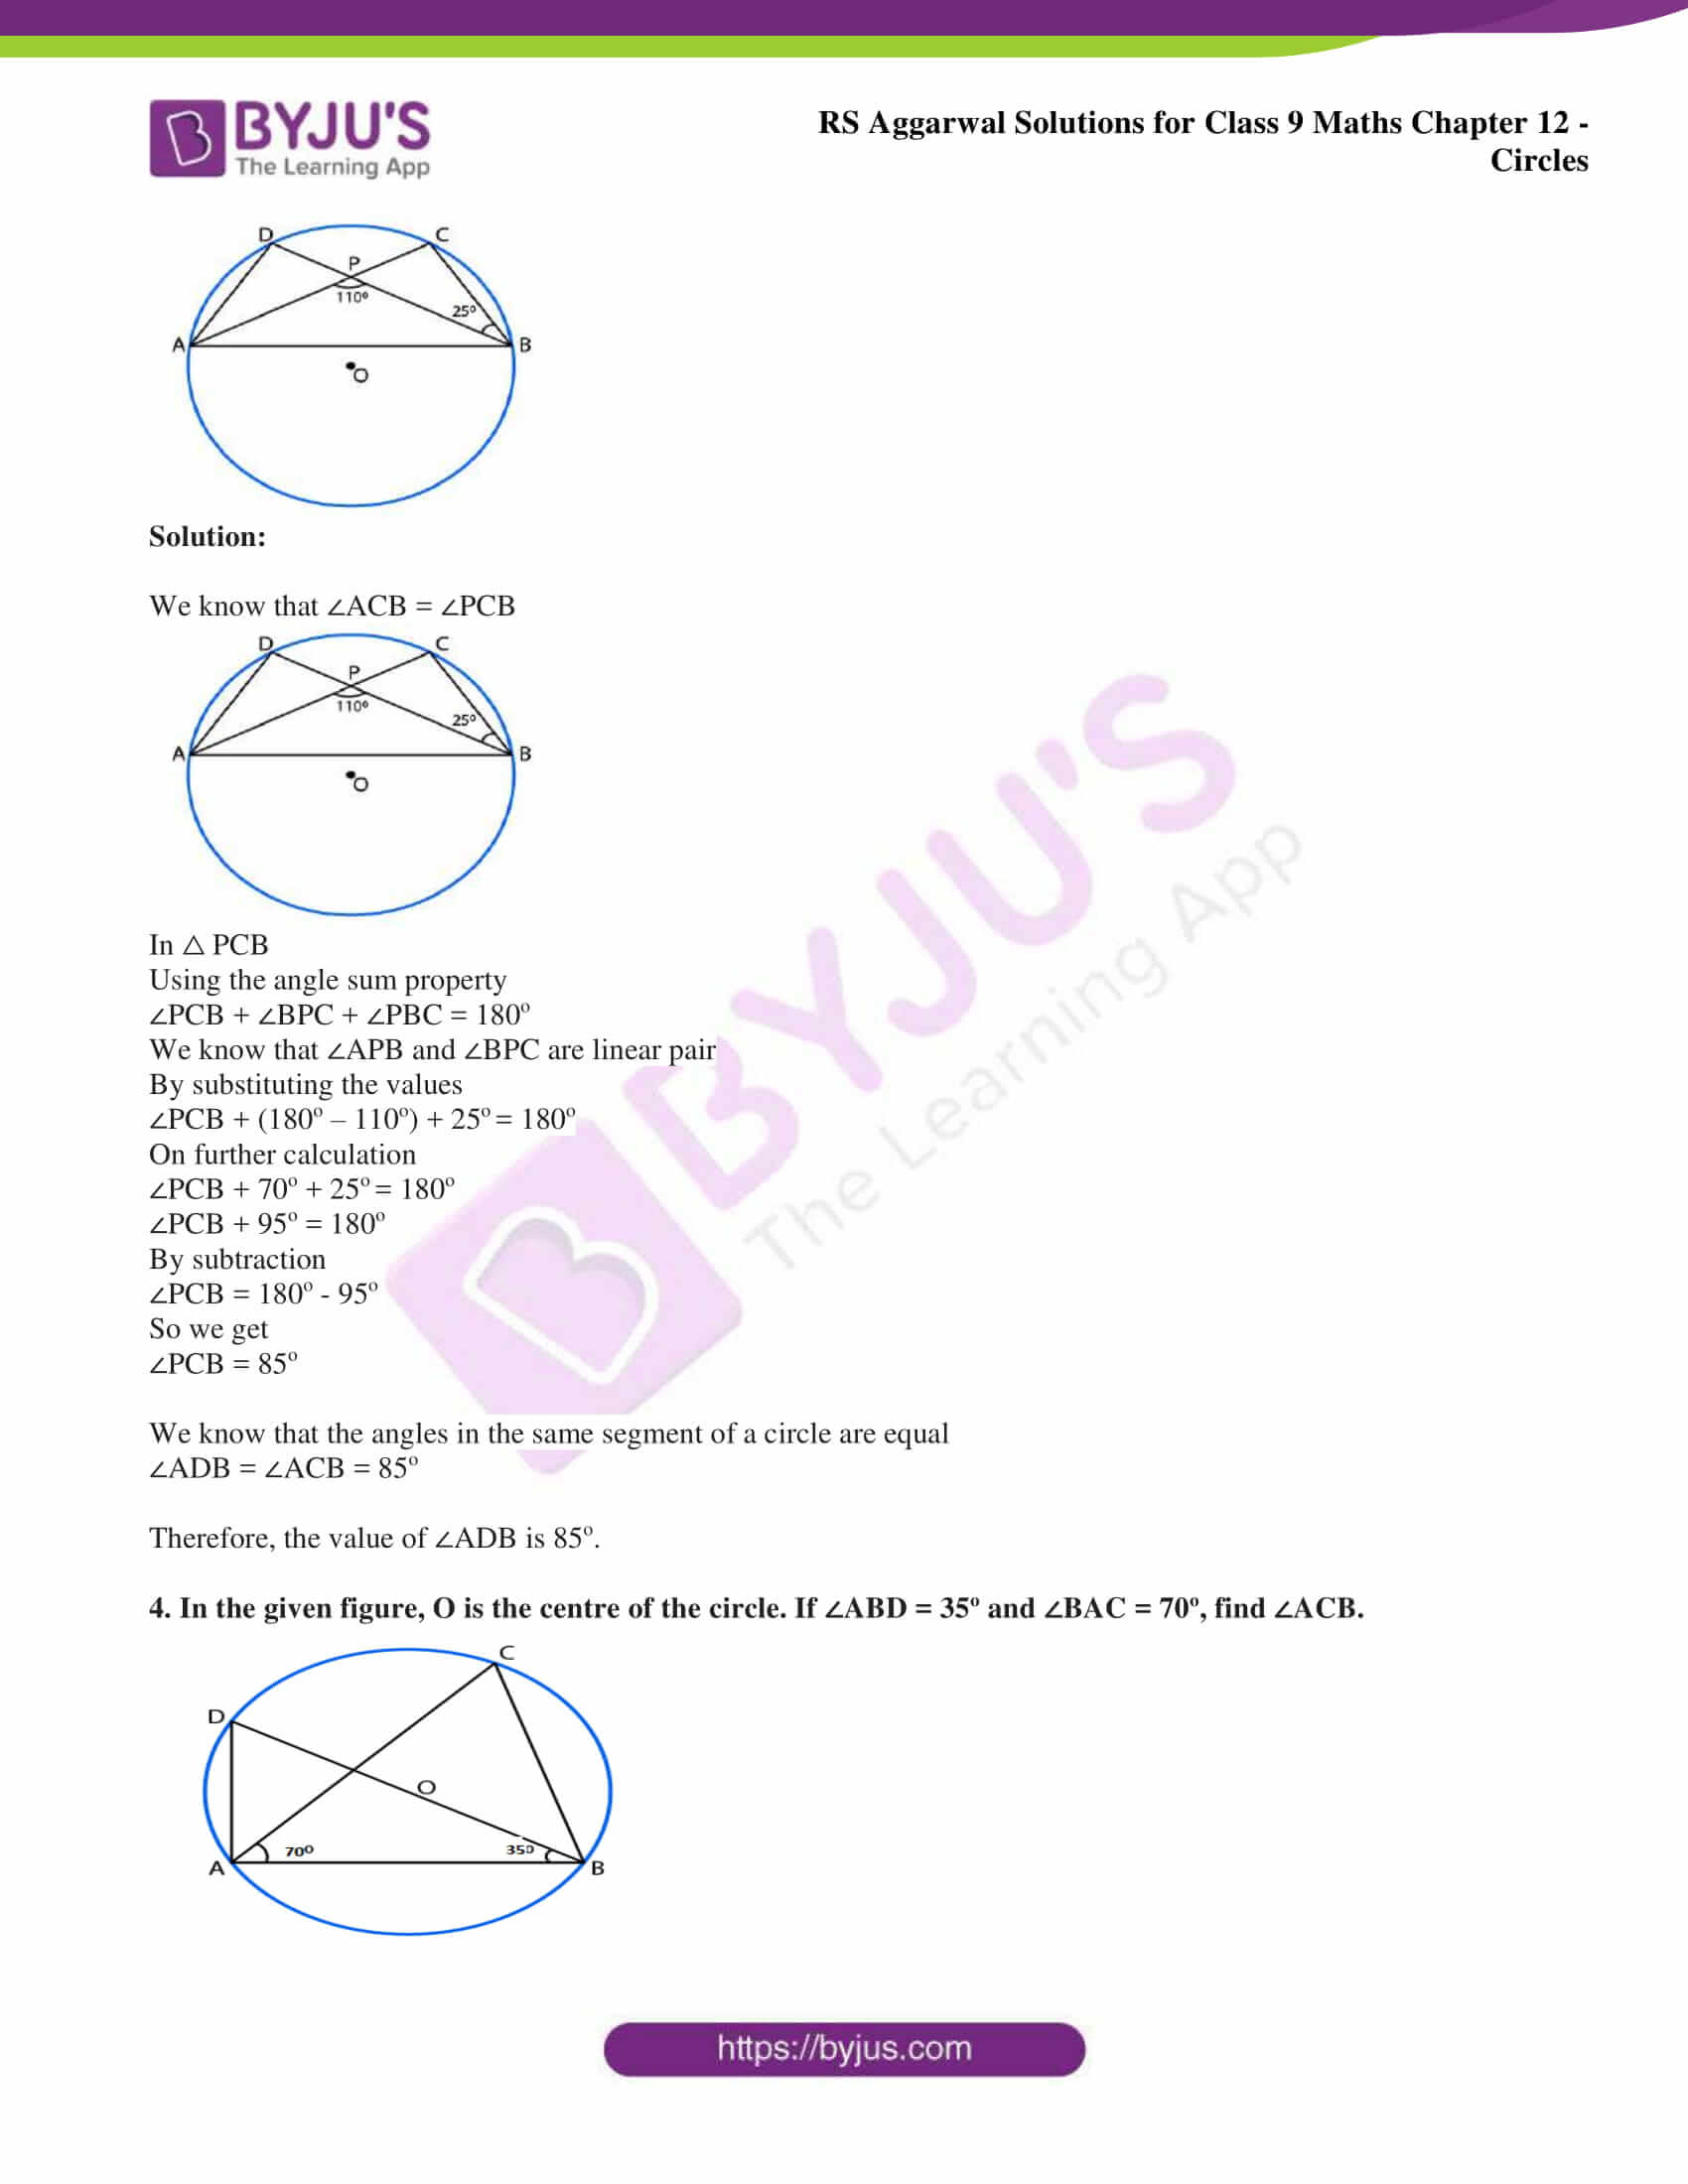 RS Aggarwal Solutions Class 9 Maths Chapter 12